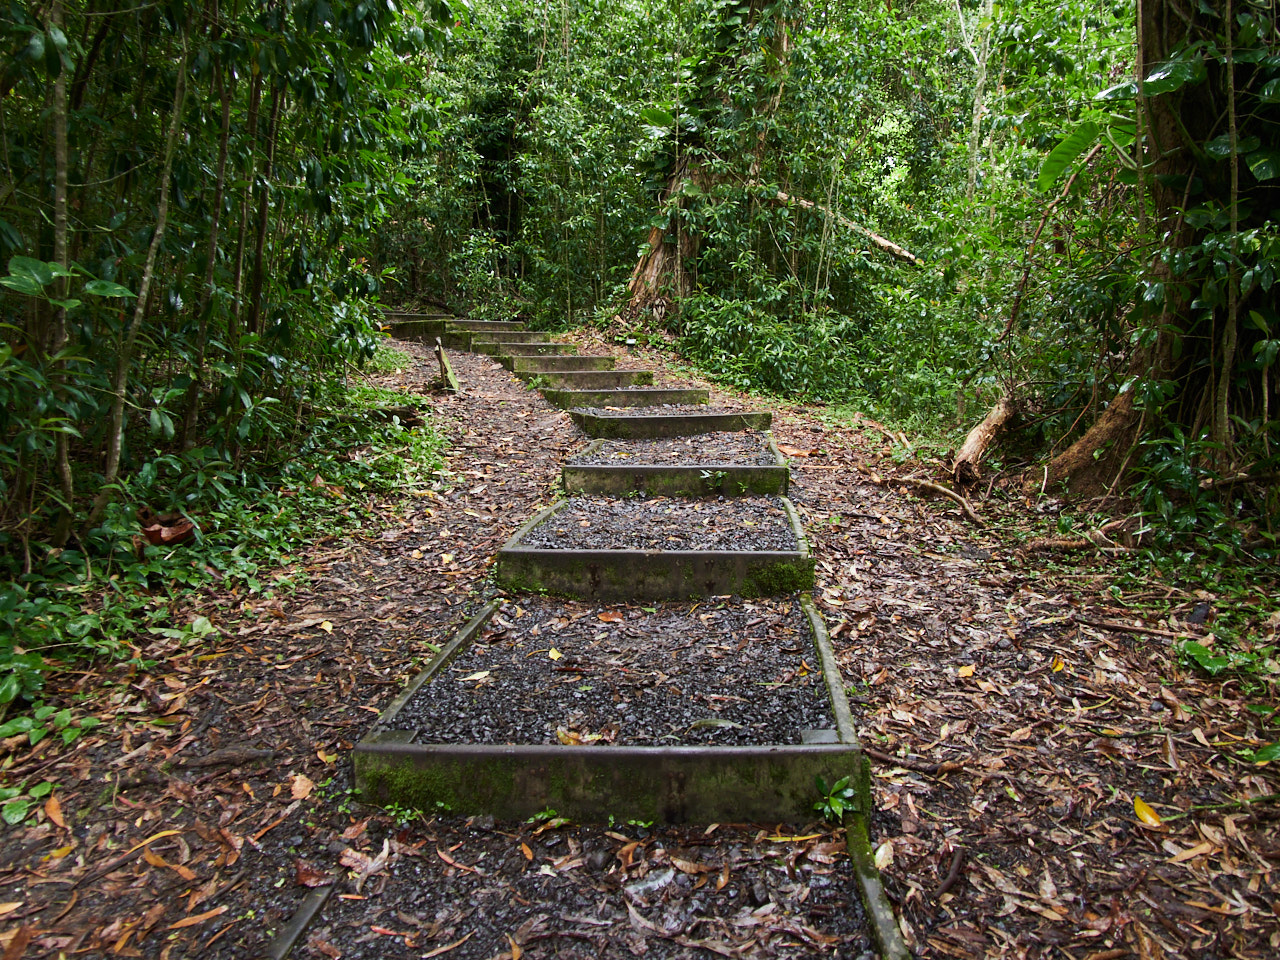 Considering the presence of some big steps, the trail is quite easy and accessible to those who can walk.